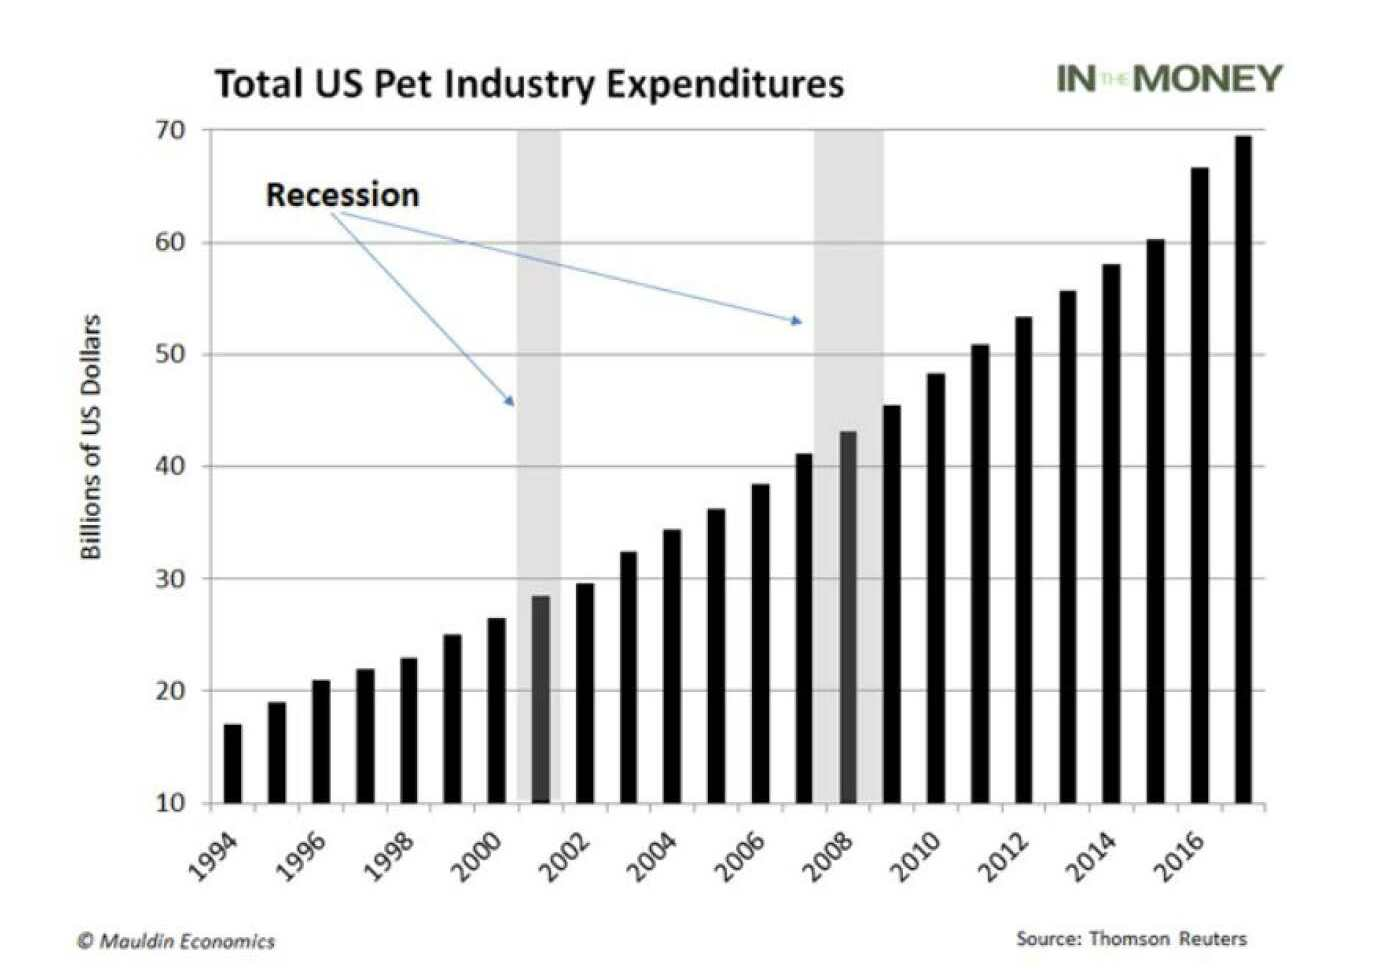 Total US Pet Industry Expenditures